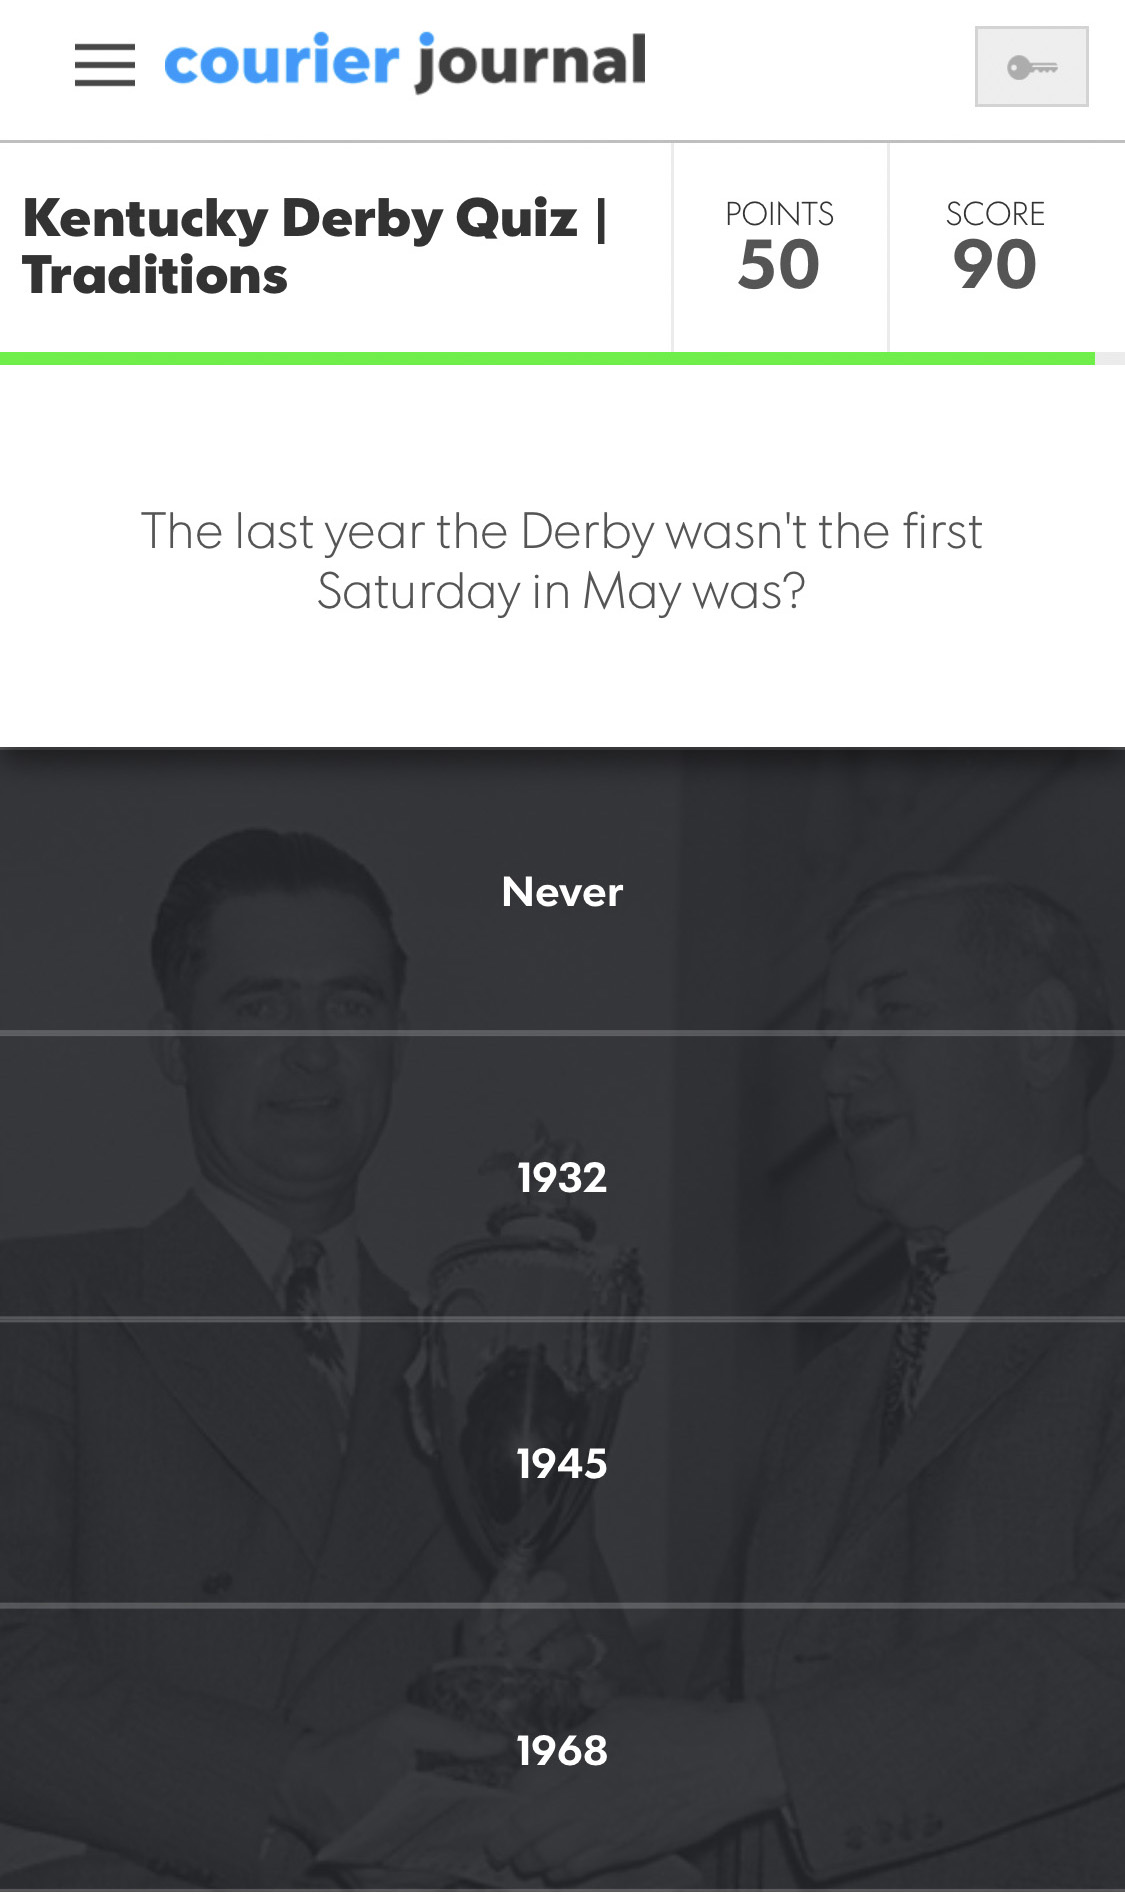 Take the quiz and test your knowledge on the Kentucky Derby traditions